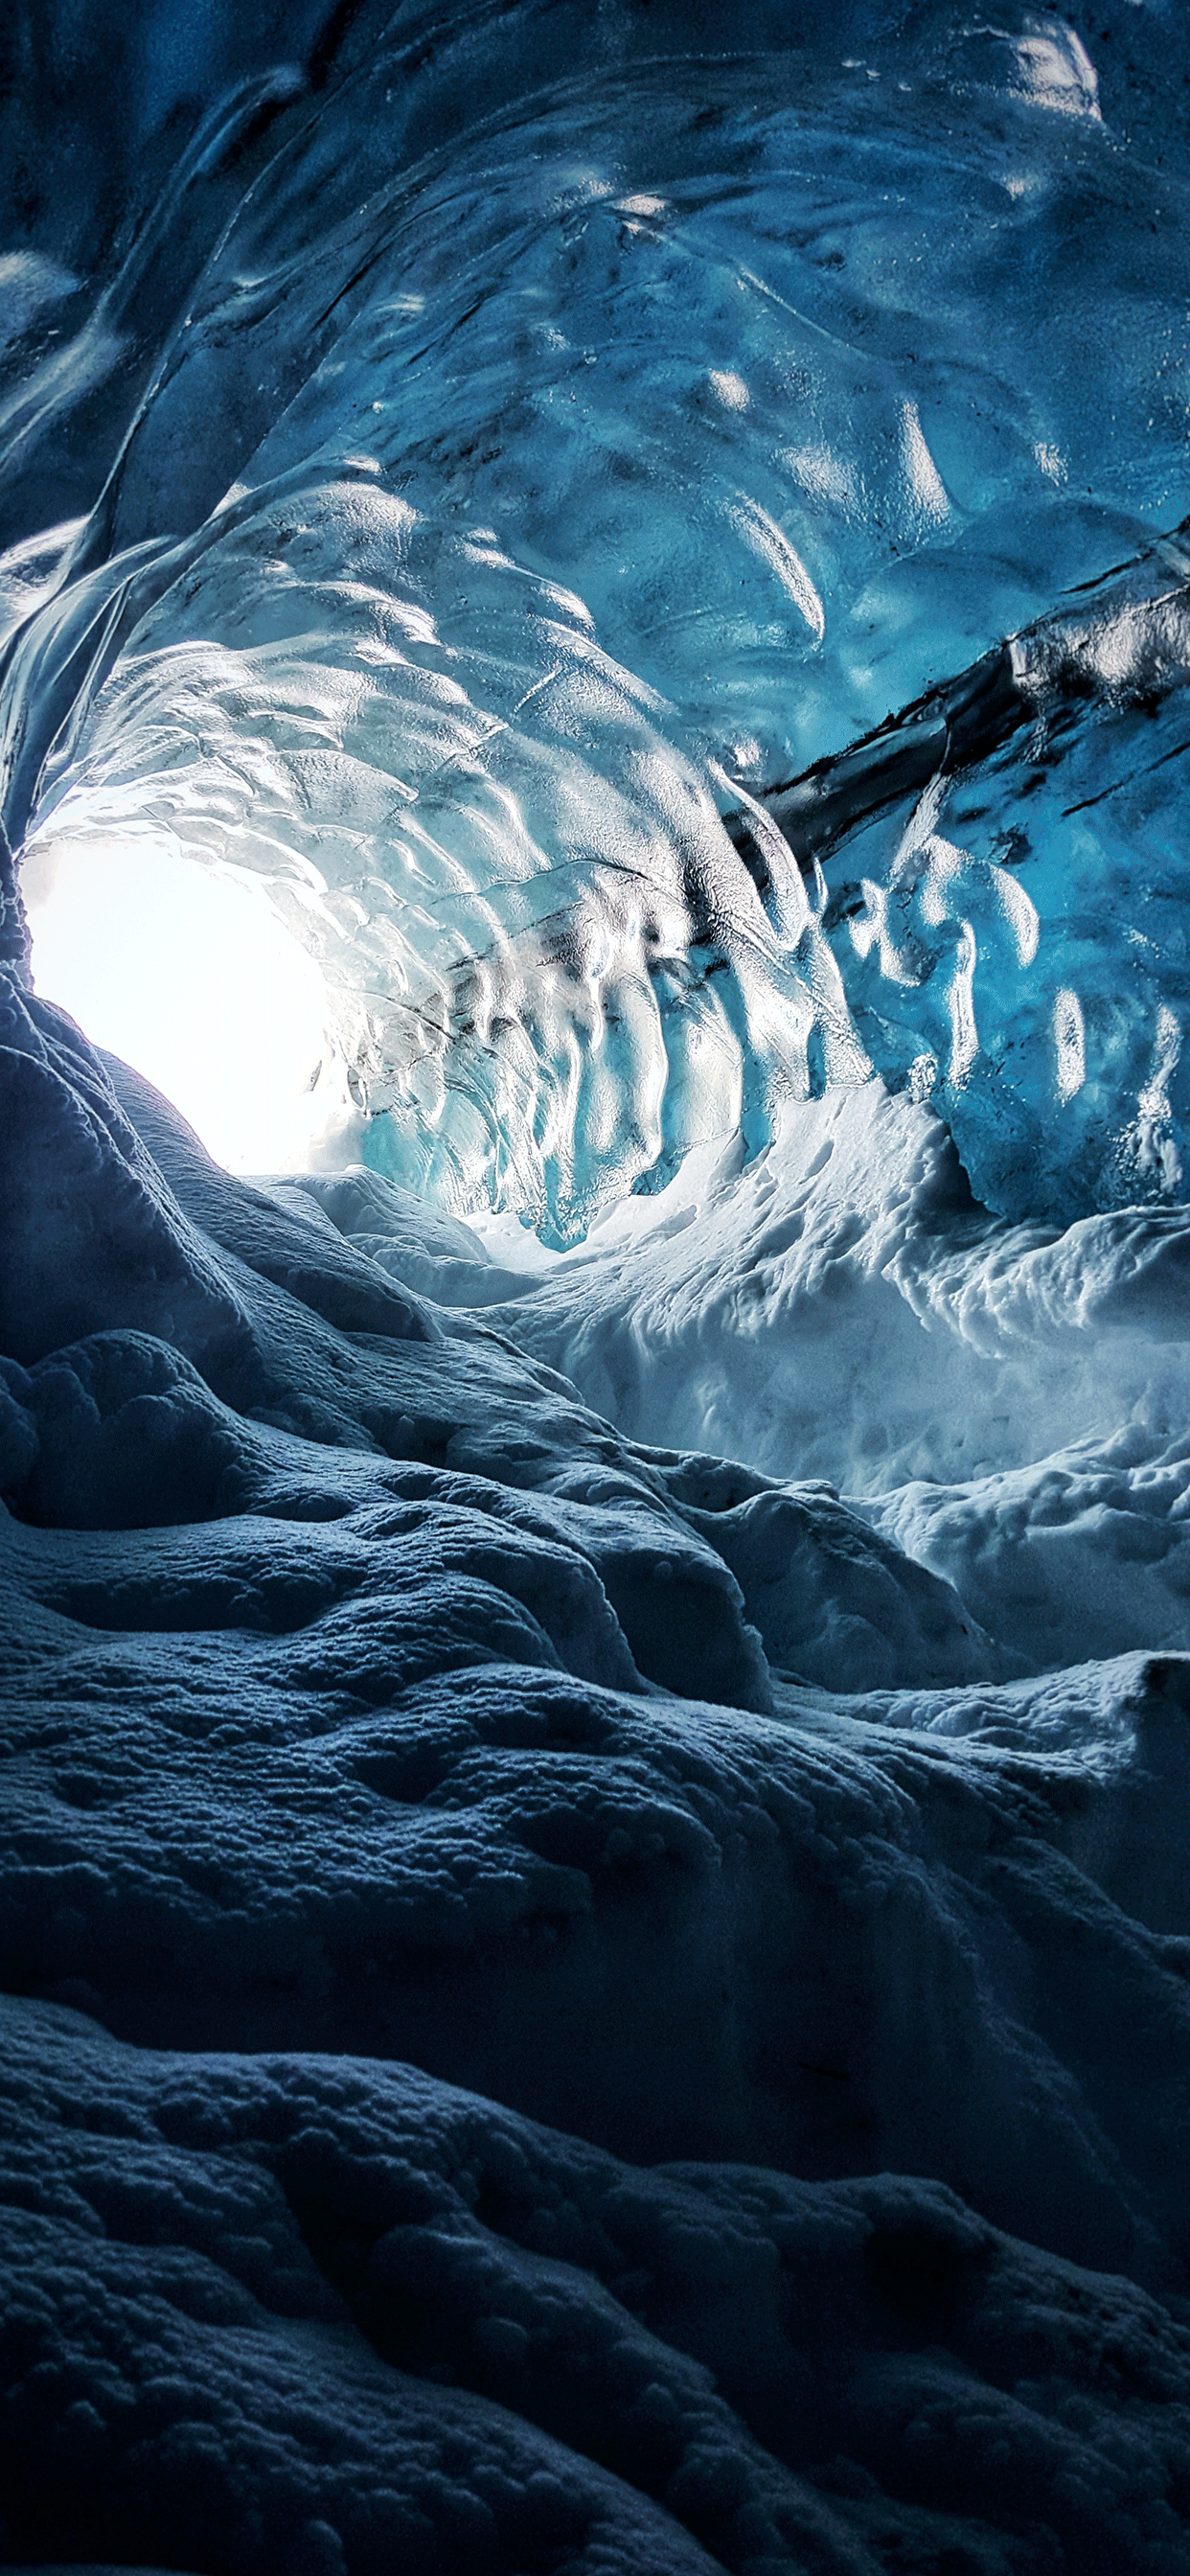 iPhone wallpapers cave ice Cave